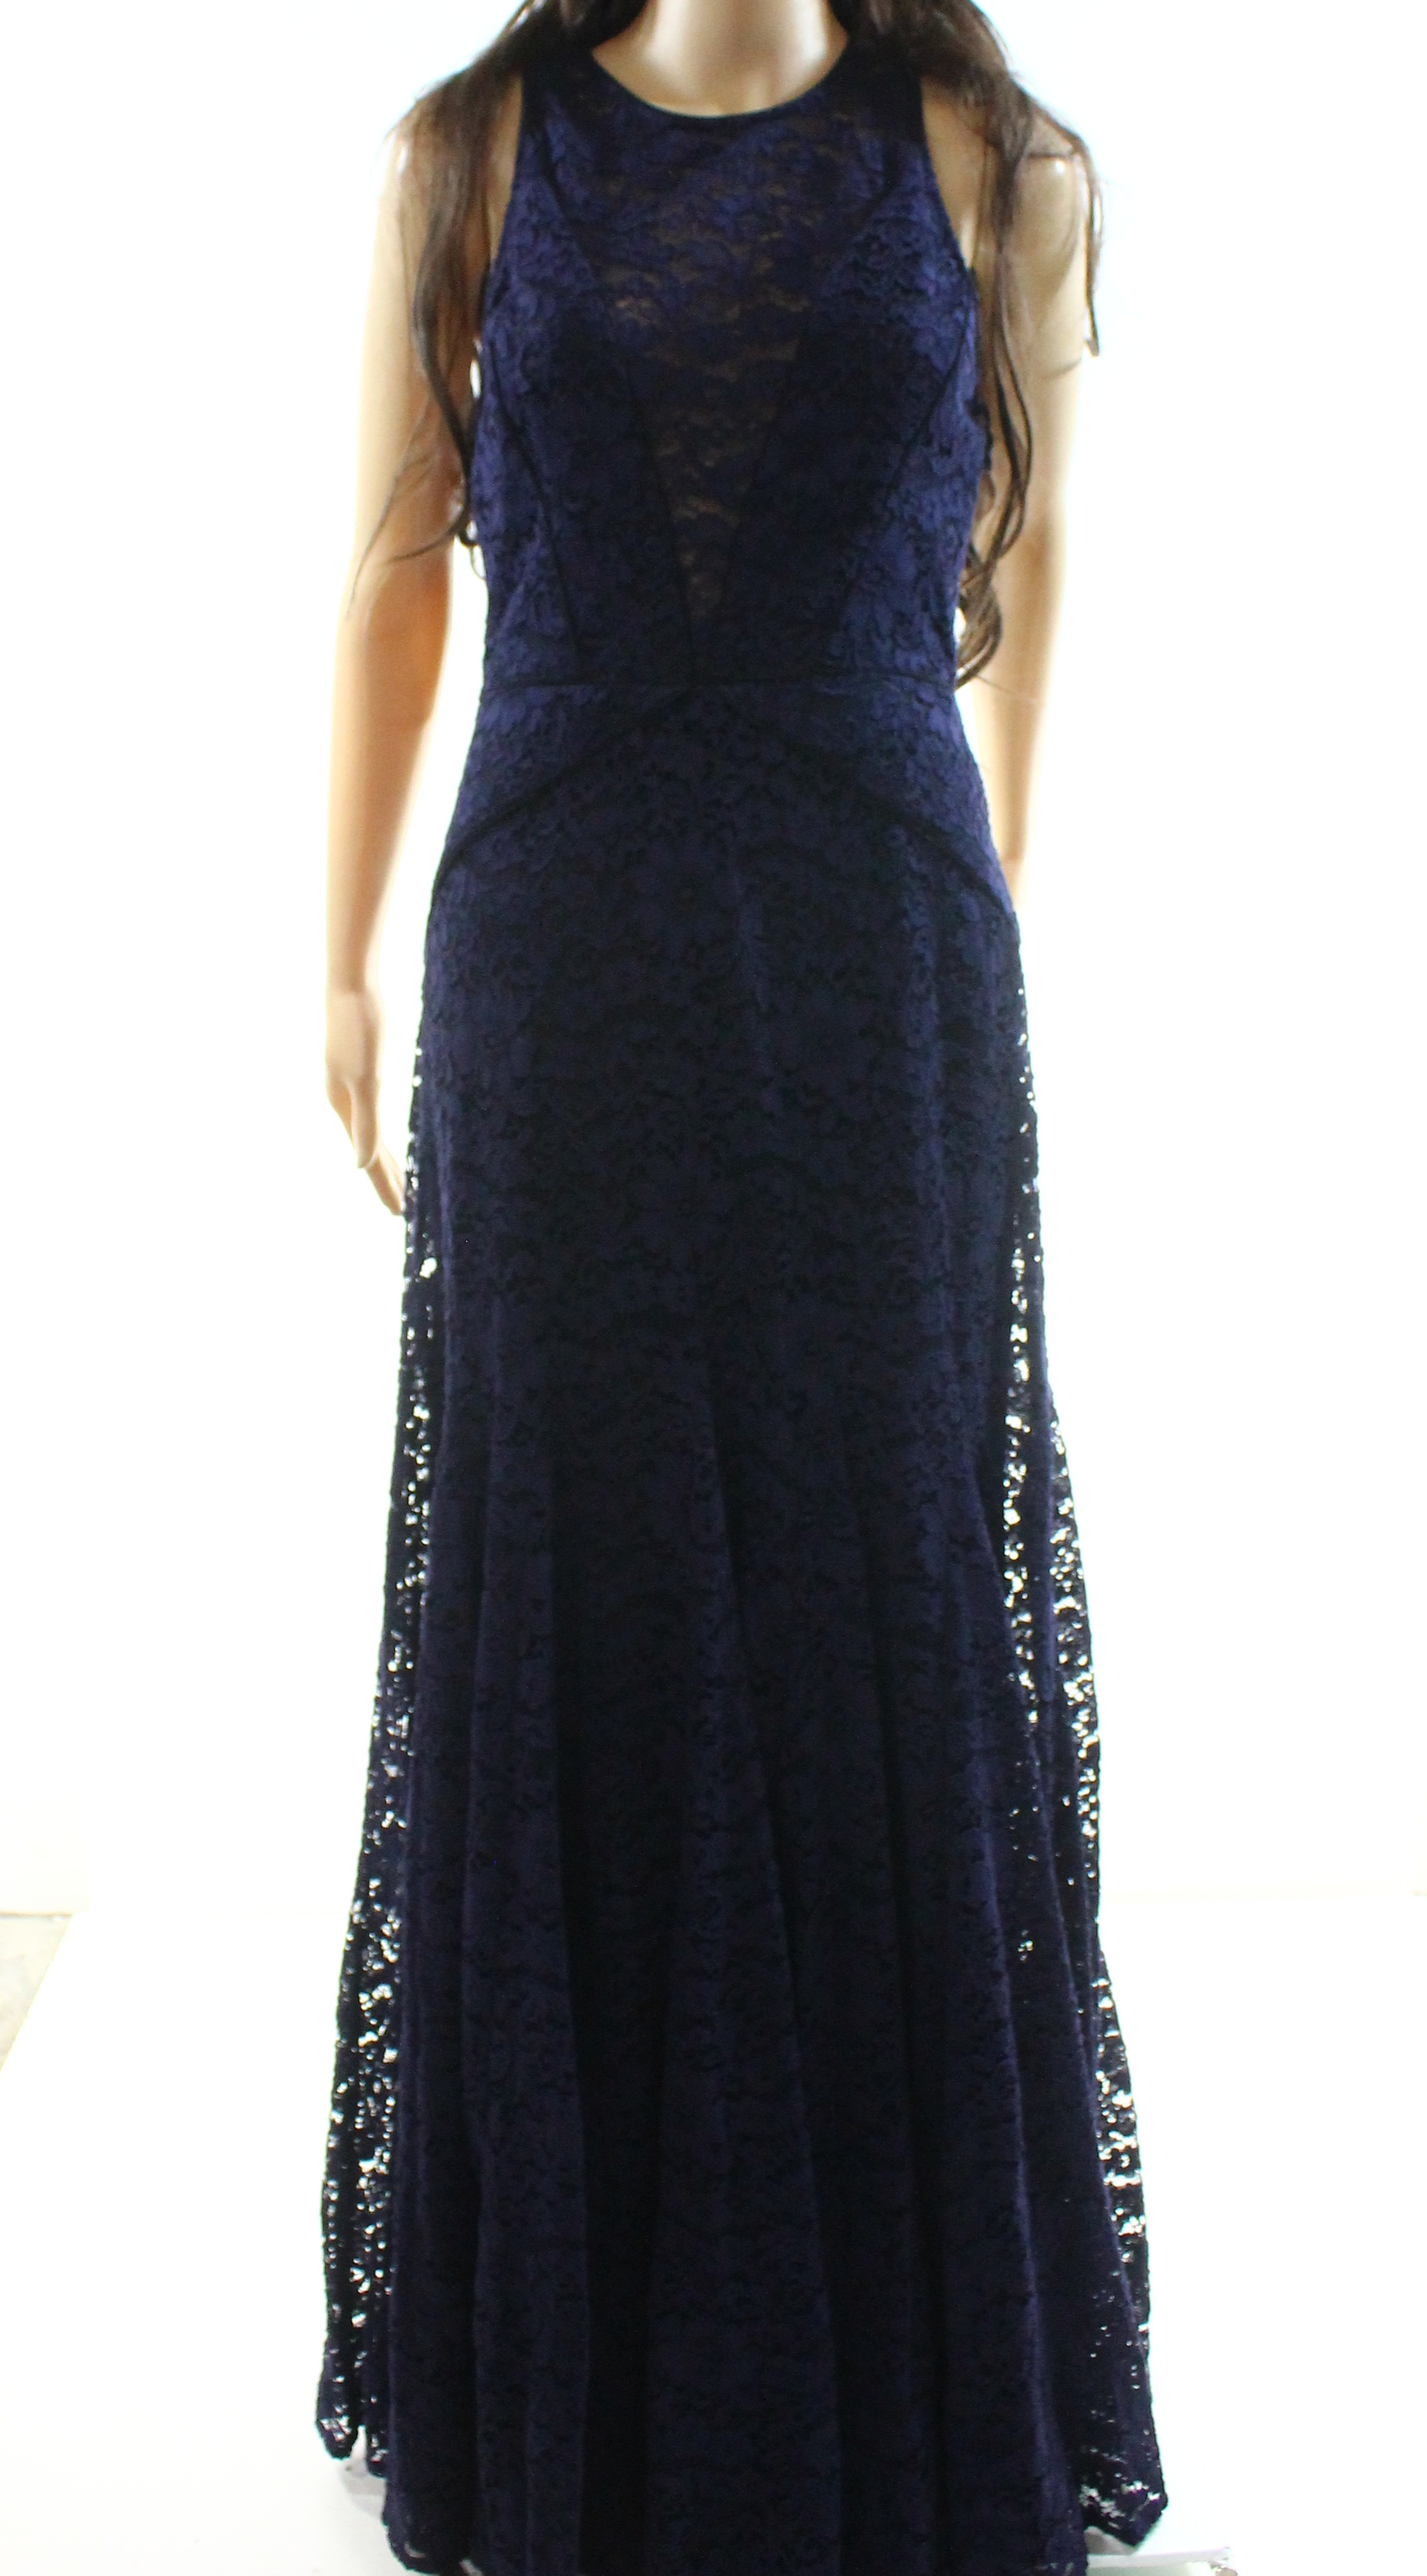 Vera Wang New Navy Blue Womens Size 6 Floral Lace Evening Gown 448